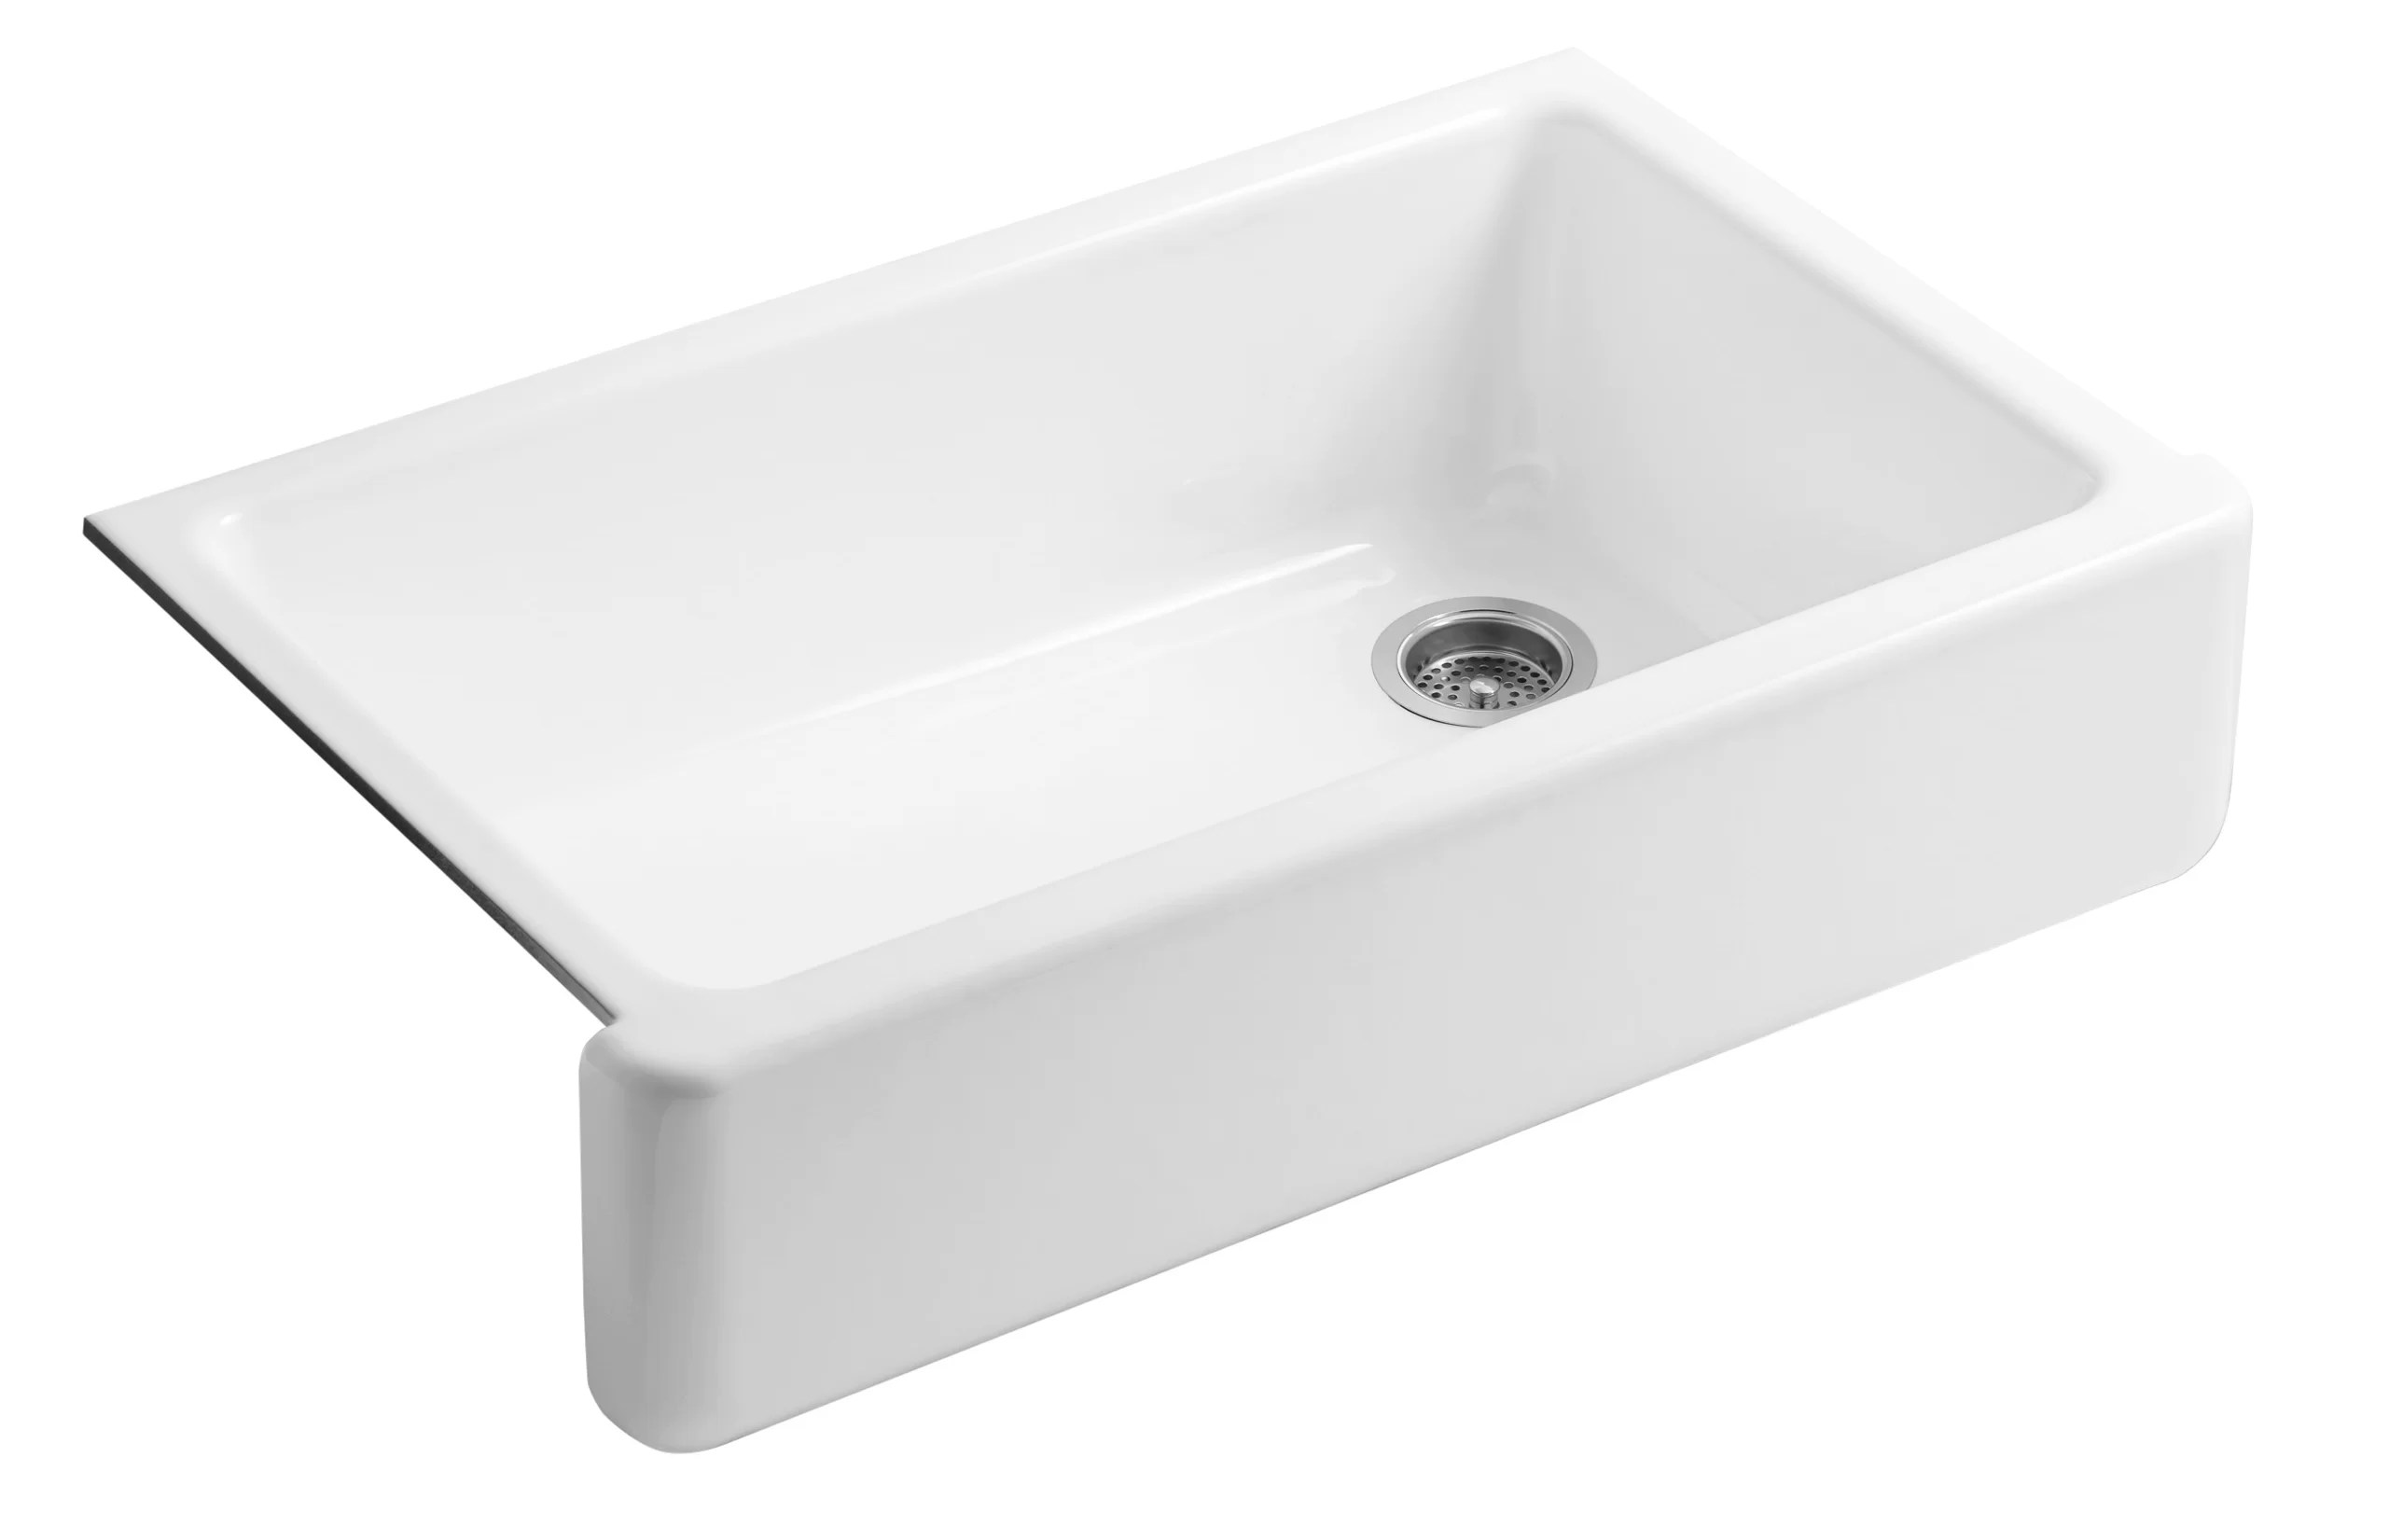 Stone Farmhouse Sink Lowest Price Whitehaven Self Trimming 35 69